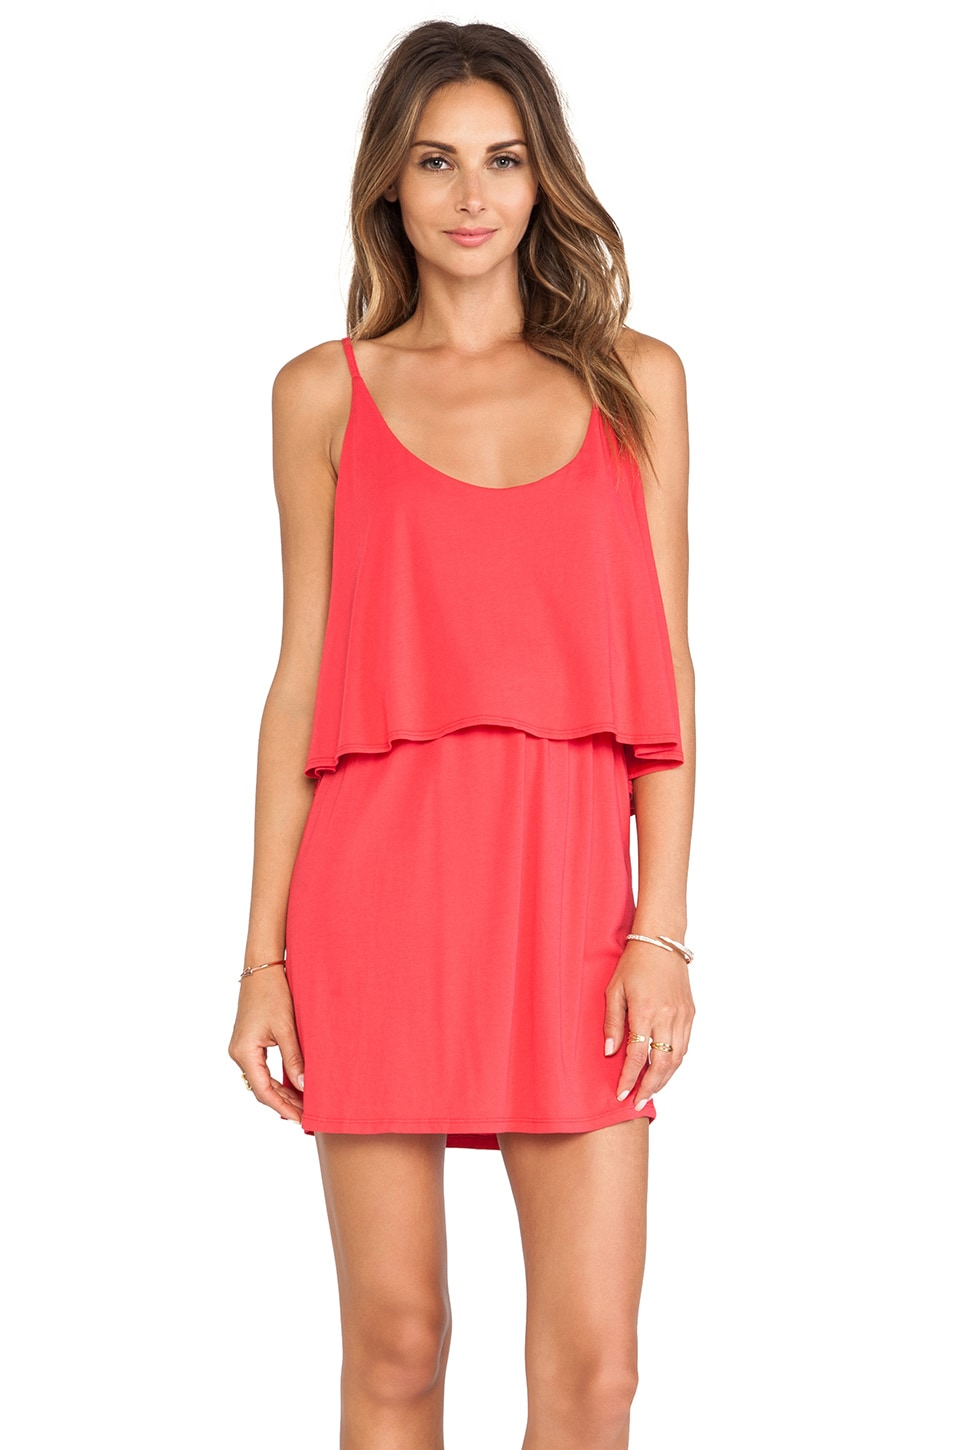 Bobi Modal Jersey Mini Tank Dress in Berry Red